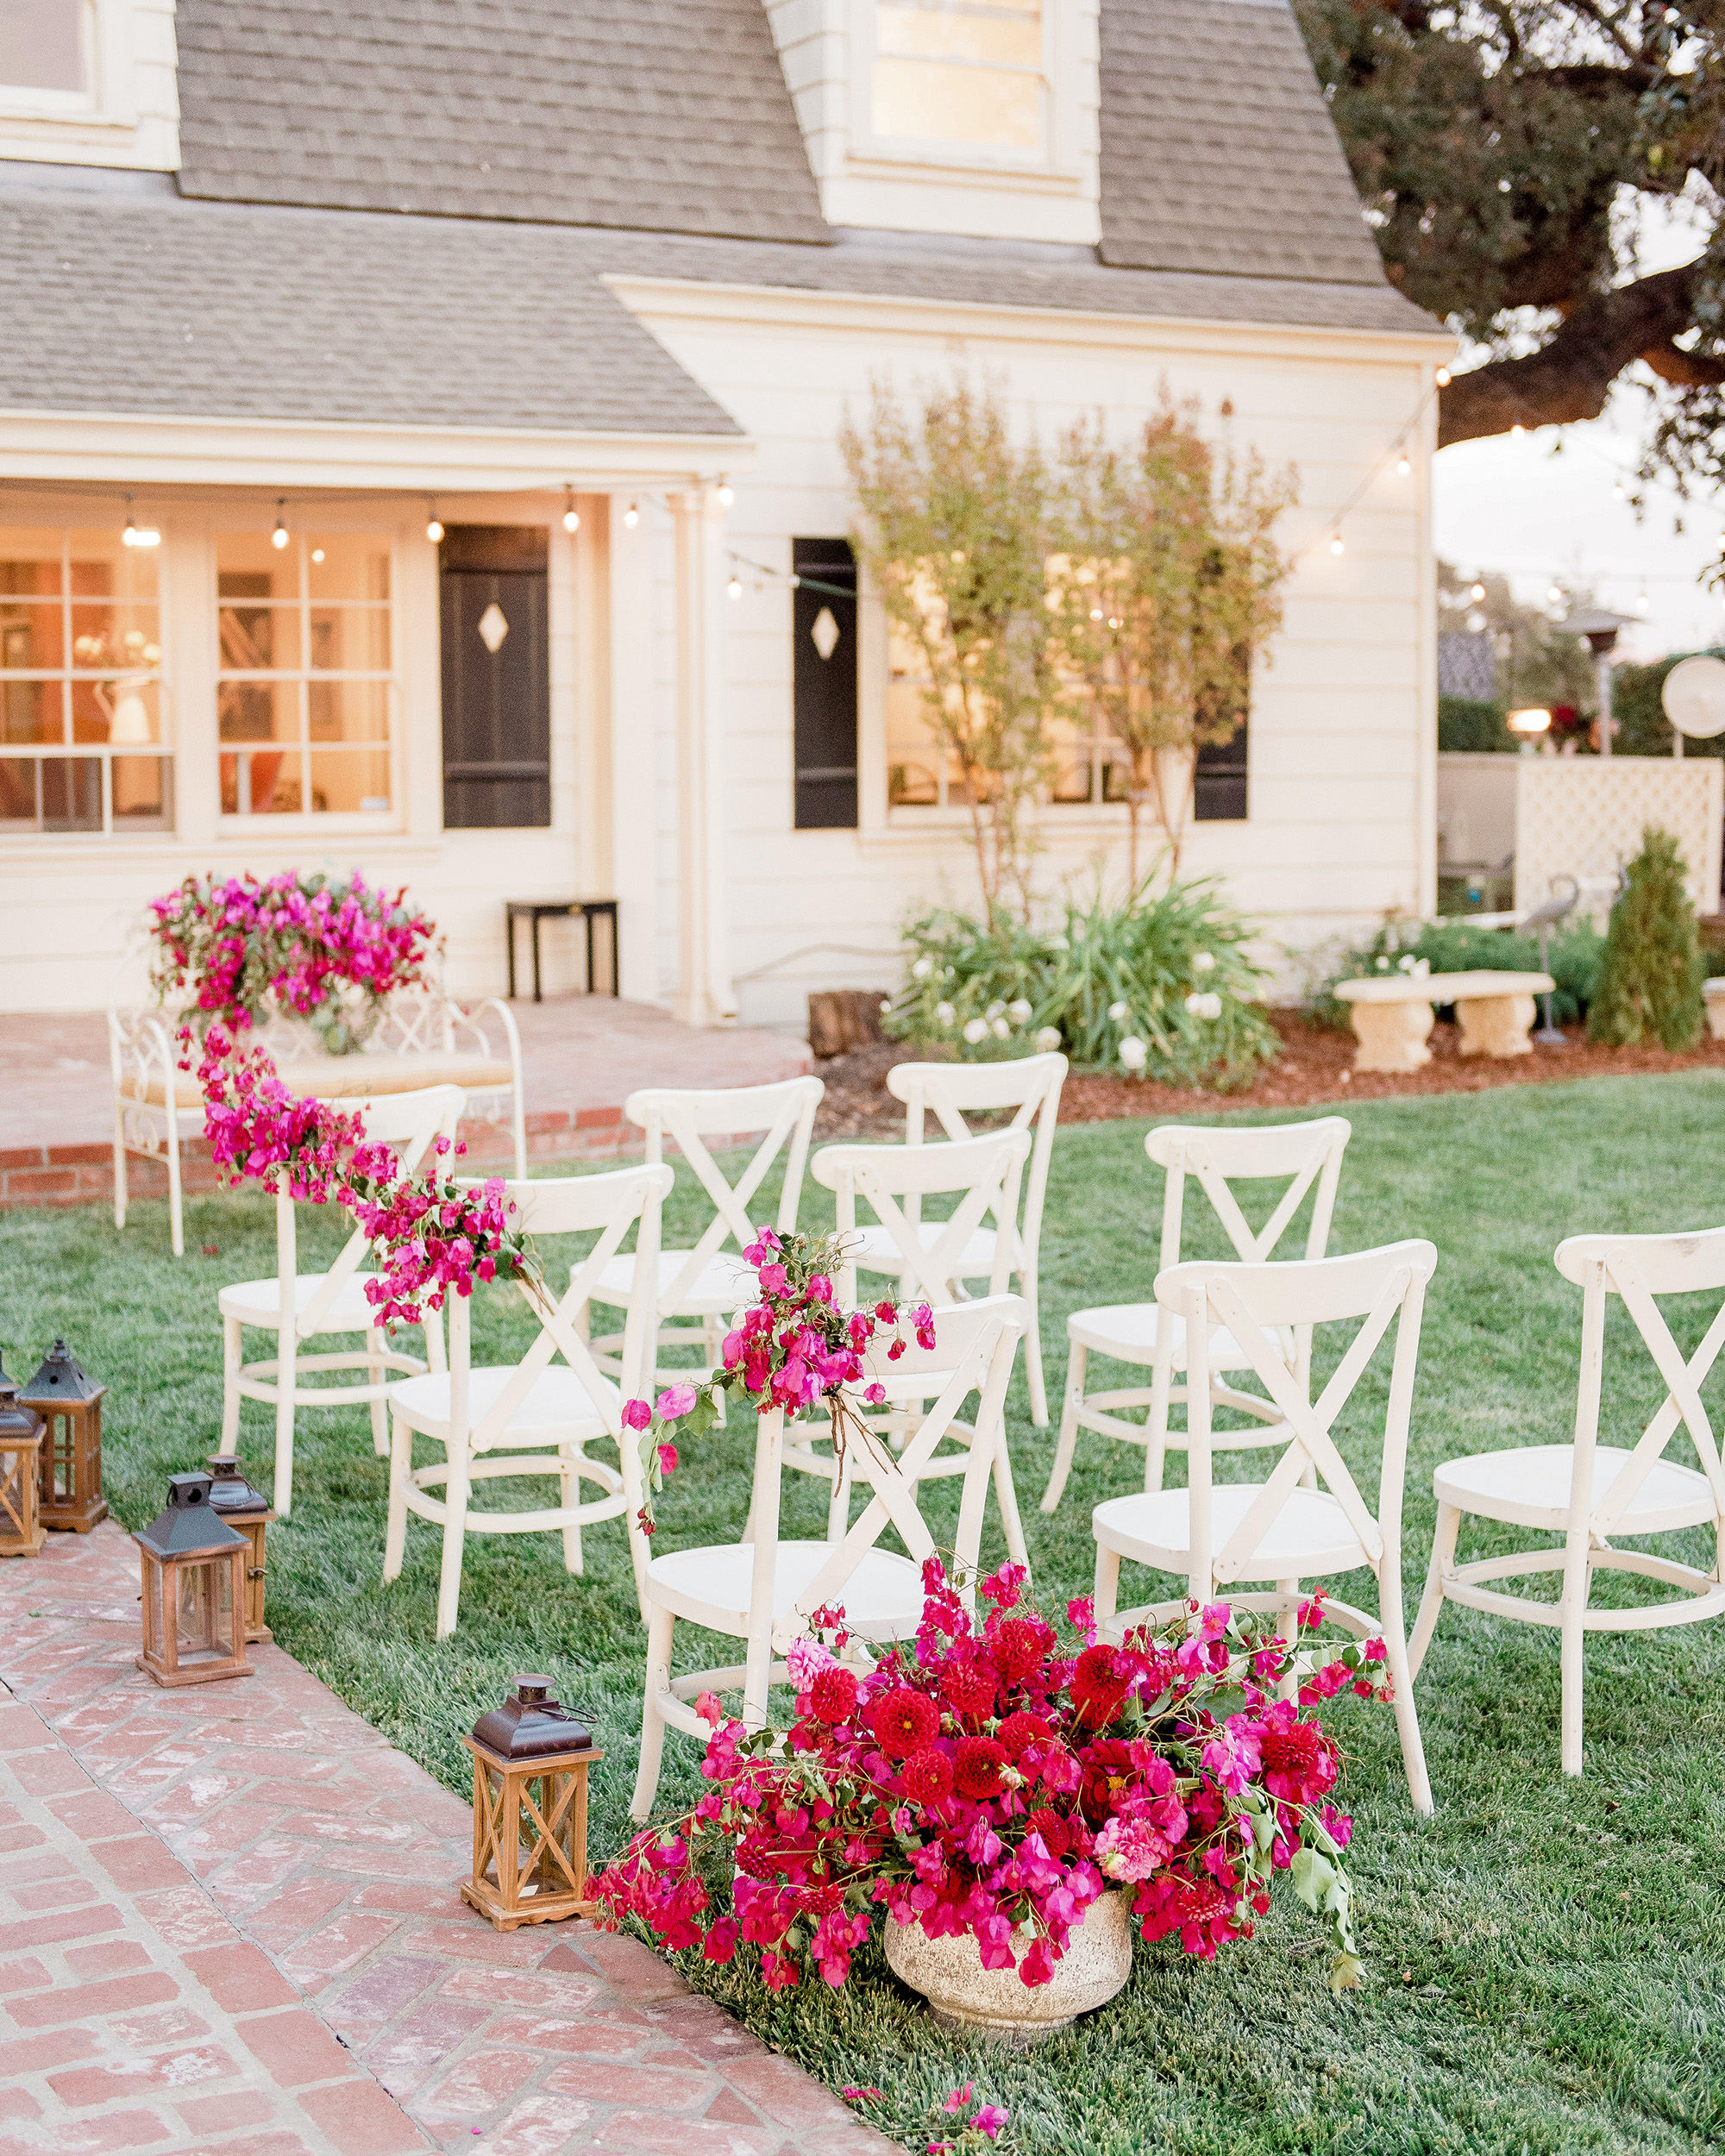 bougainvillea flowers all-white wedding ceremony